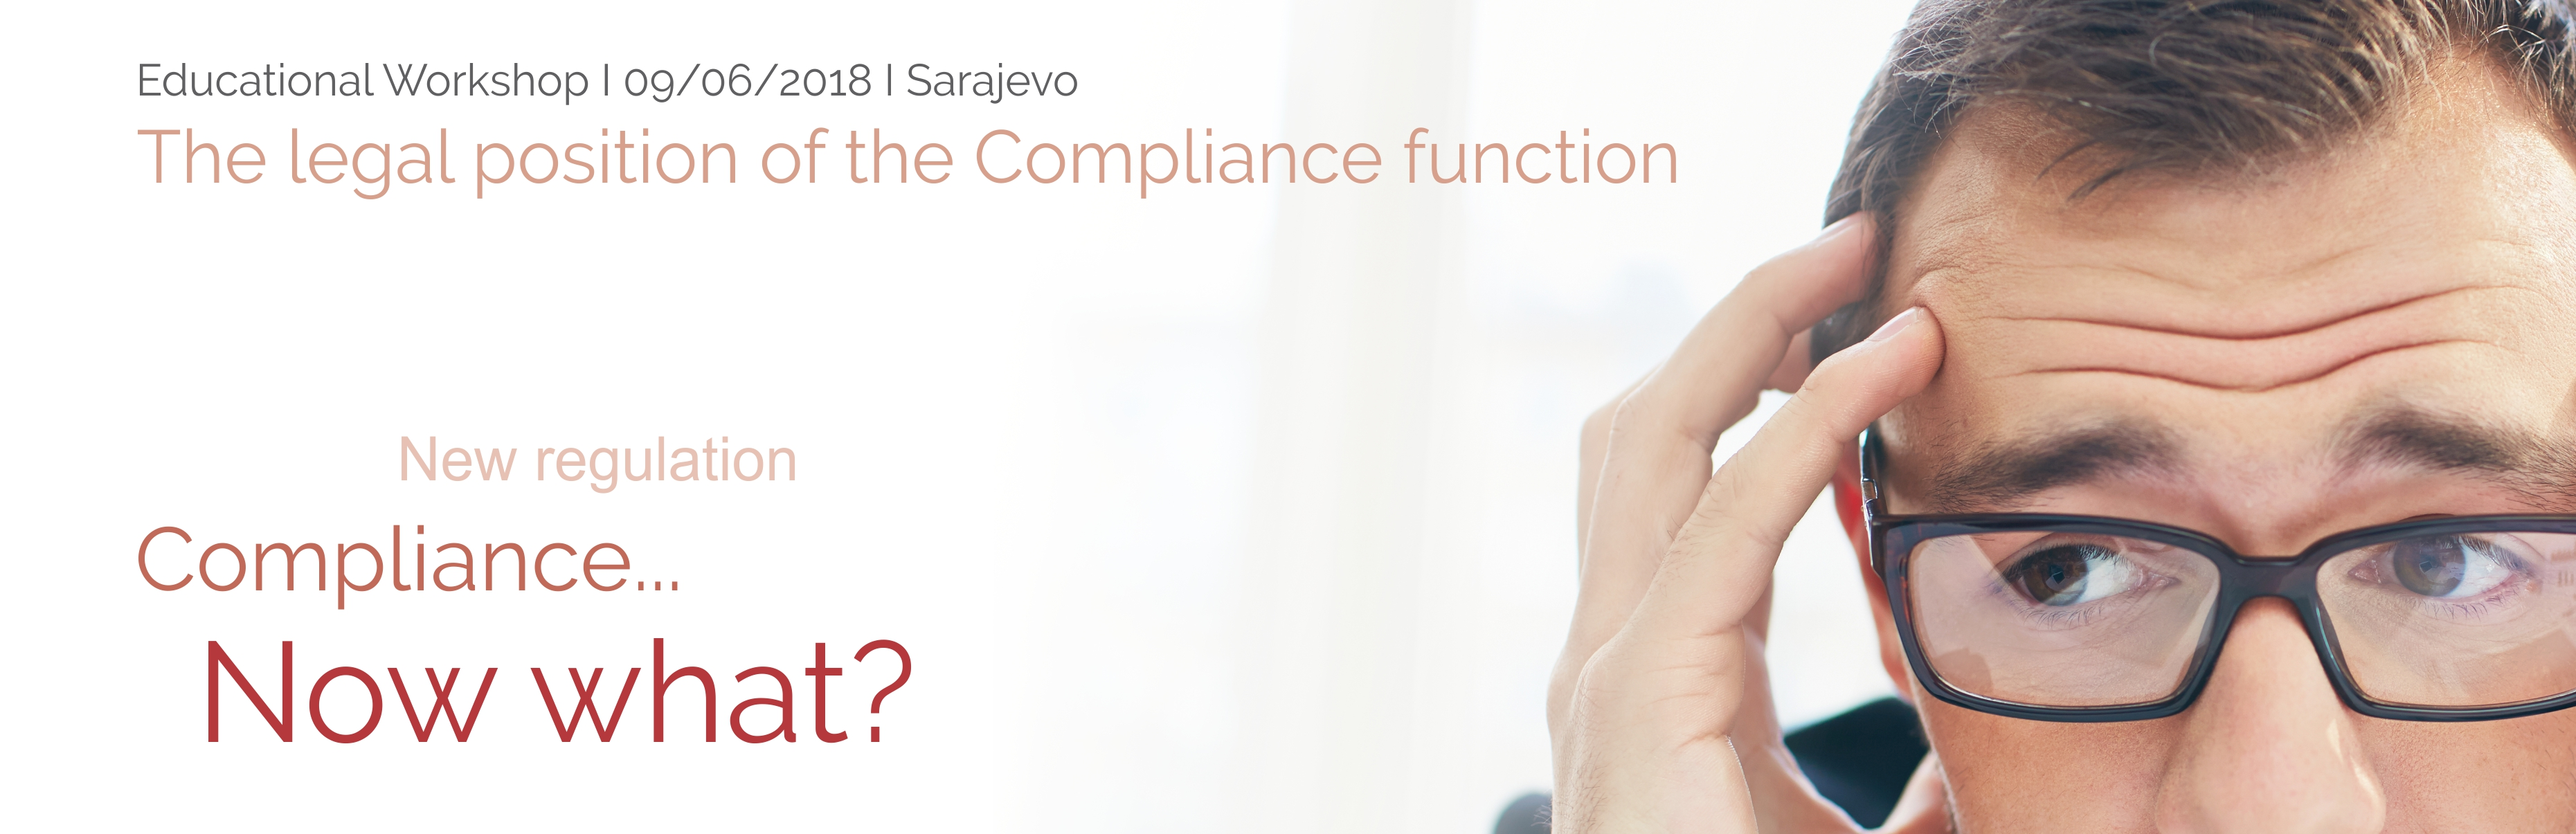 The legal position of the Compliance function